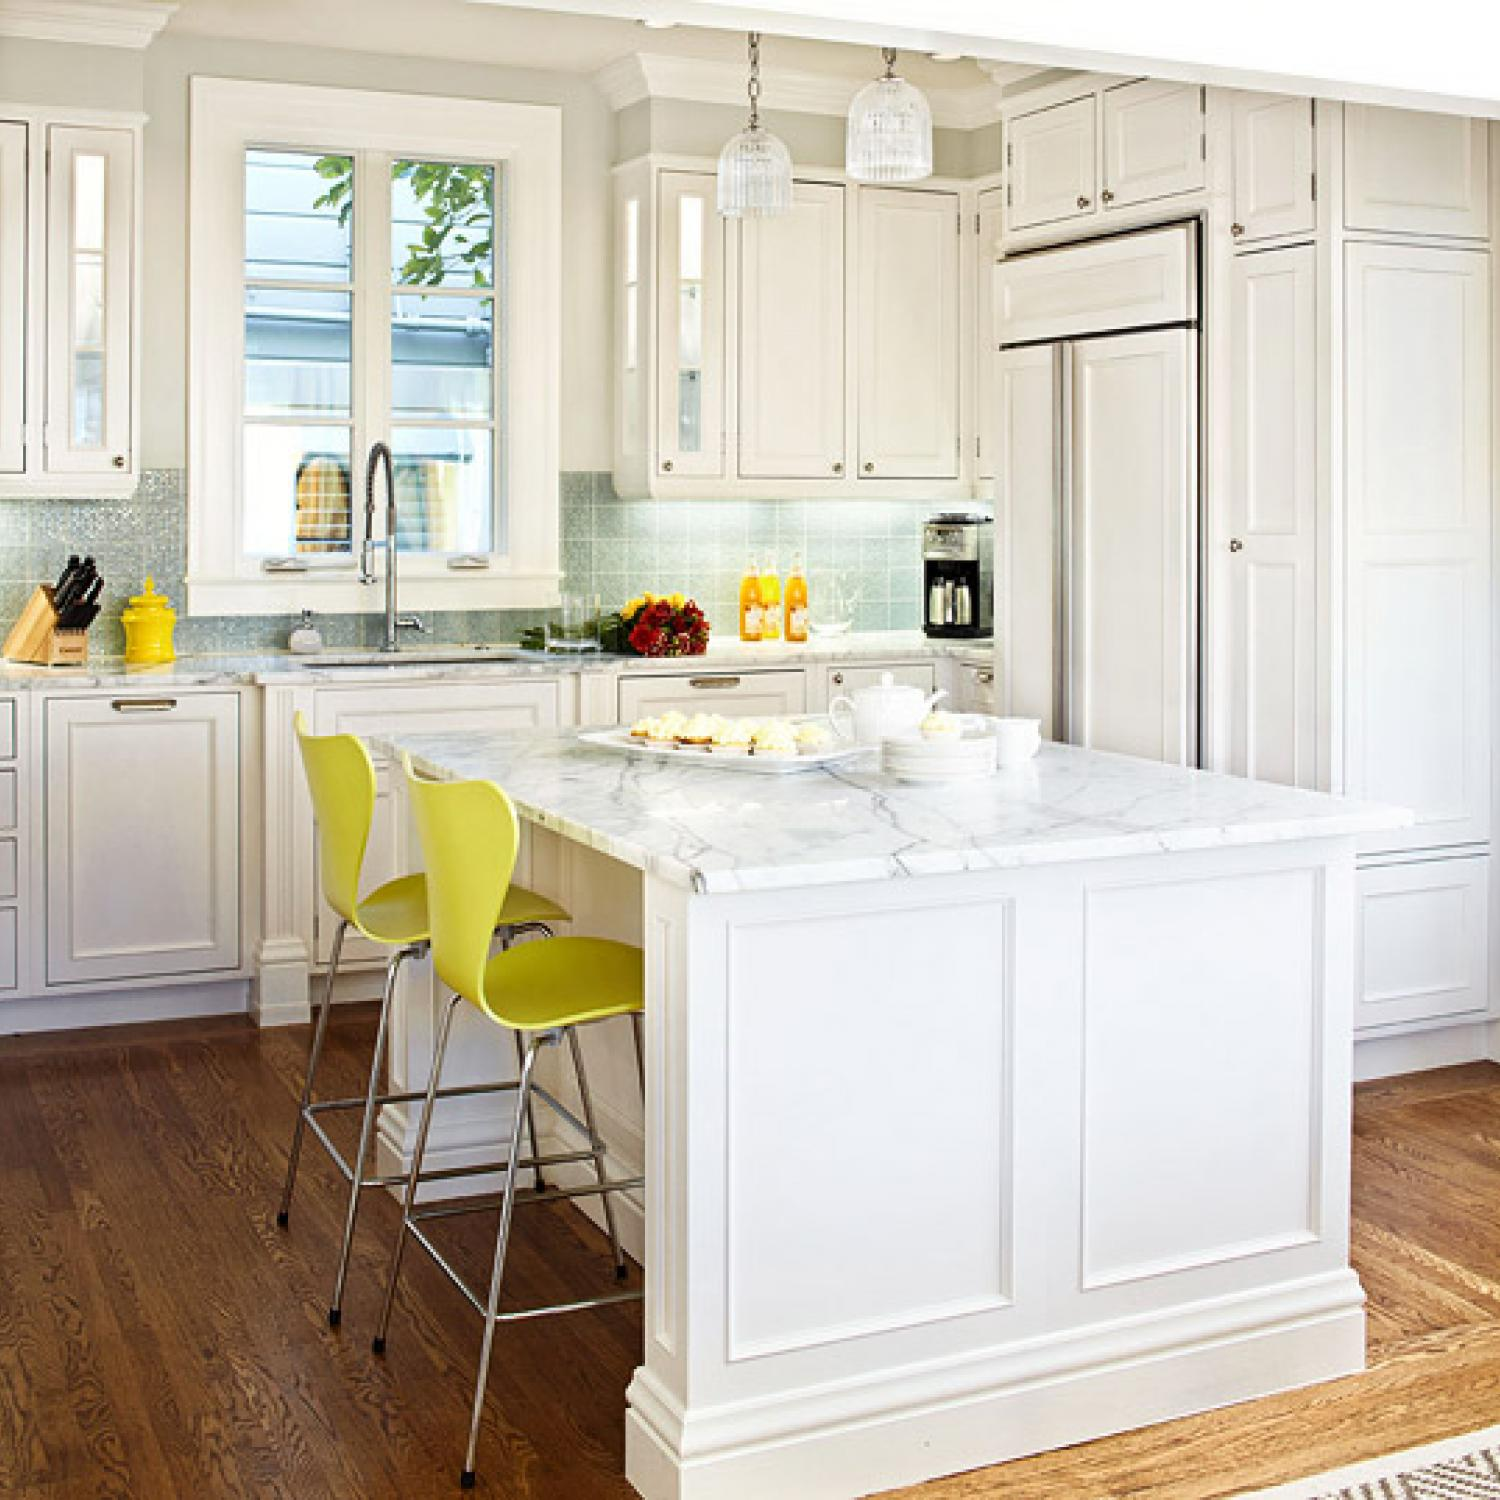 Design ideas for white kitchens traditional home for Home kitchen ideas